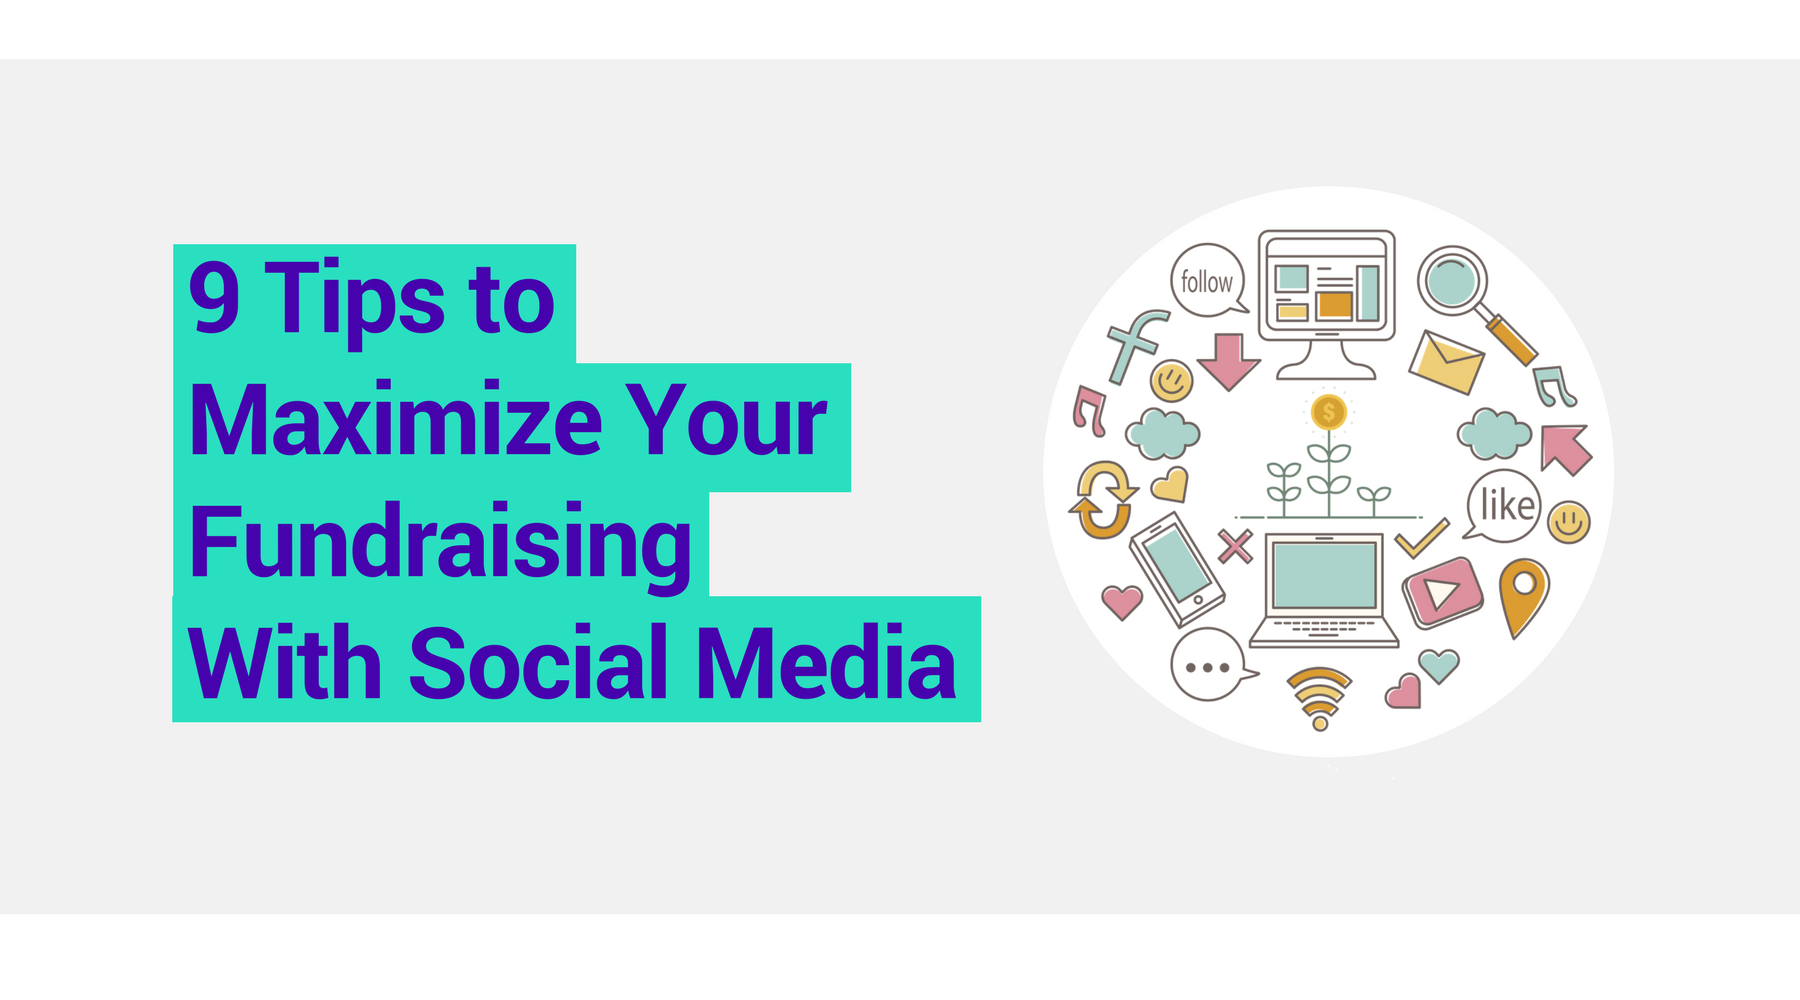 9 tips to maximize your fundraising with social media